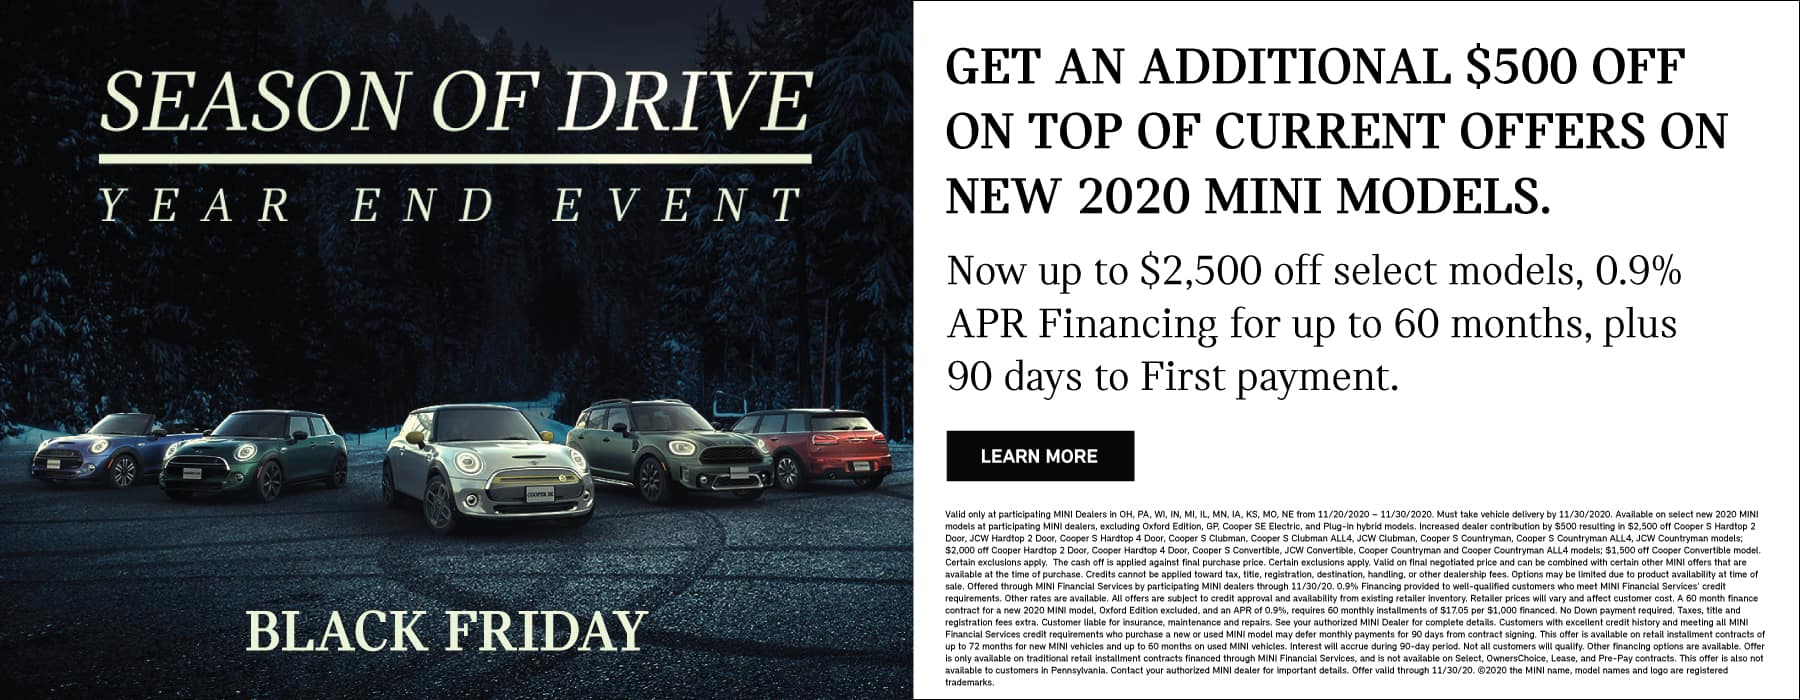 image of mini vehicles in dark forest with the text Season of Drive, Black Friday. Get An additional $500 off current offers on new mini models. Now up to $2,500 off select model, 0.9% APR for up to 60 months, plus 90 days to first payment. Through 11/30/2020.